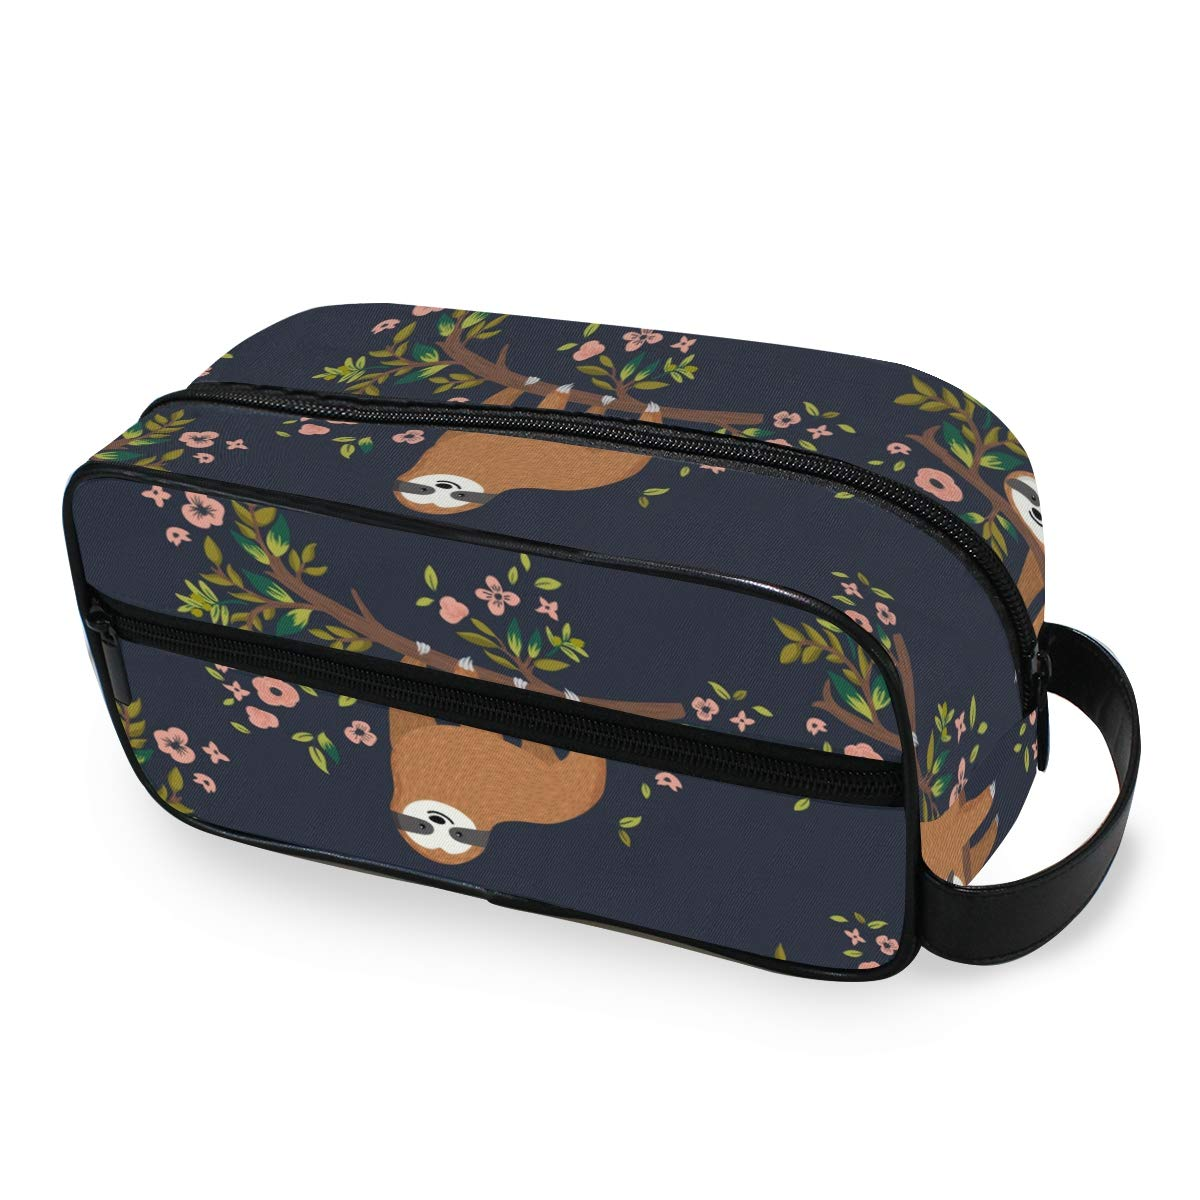 JOYPRINT Portable Travel Makeup Bag, Floral Flower Tree Animal Sloth Cosmetic Bag Toiletry Bag Pouch with Zipper Multifunction Cosmetic Case for Women Girls